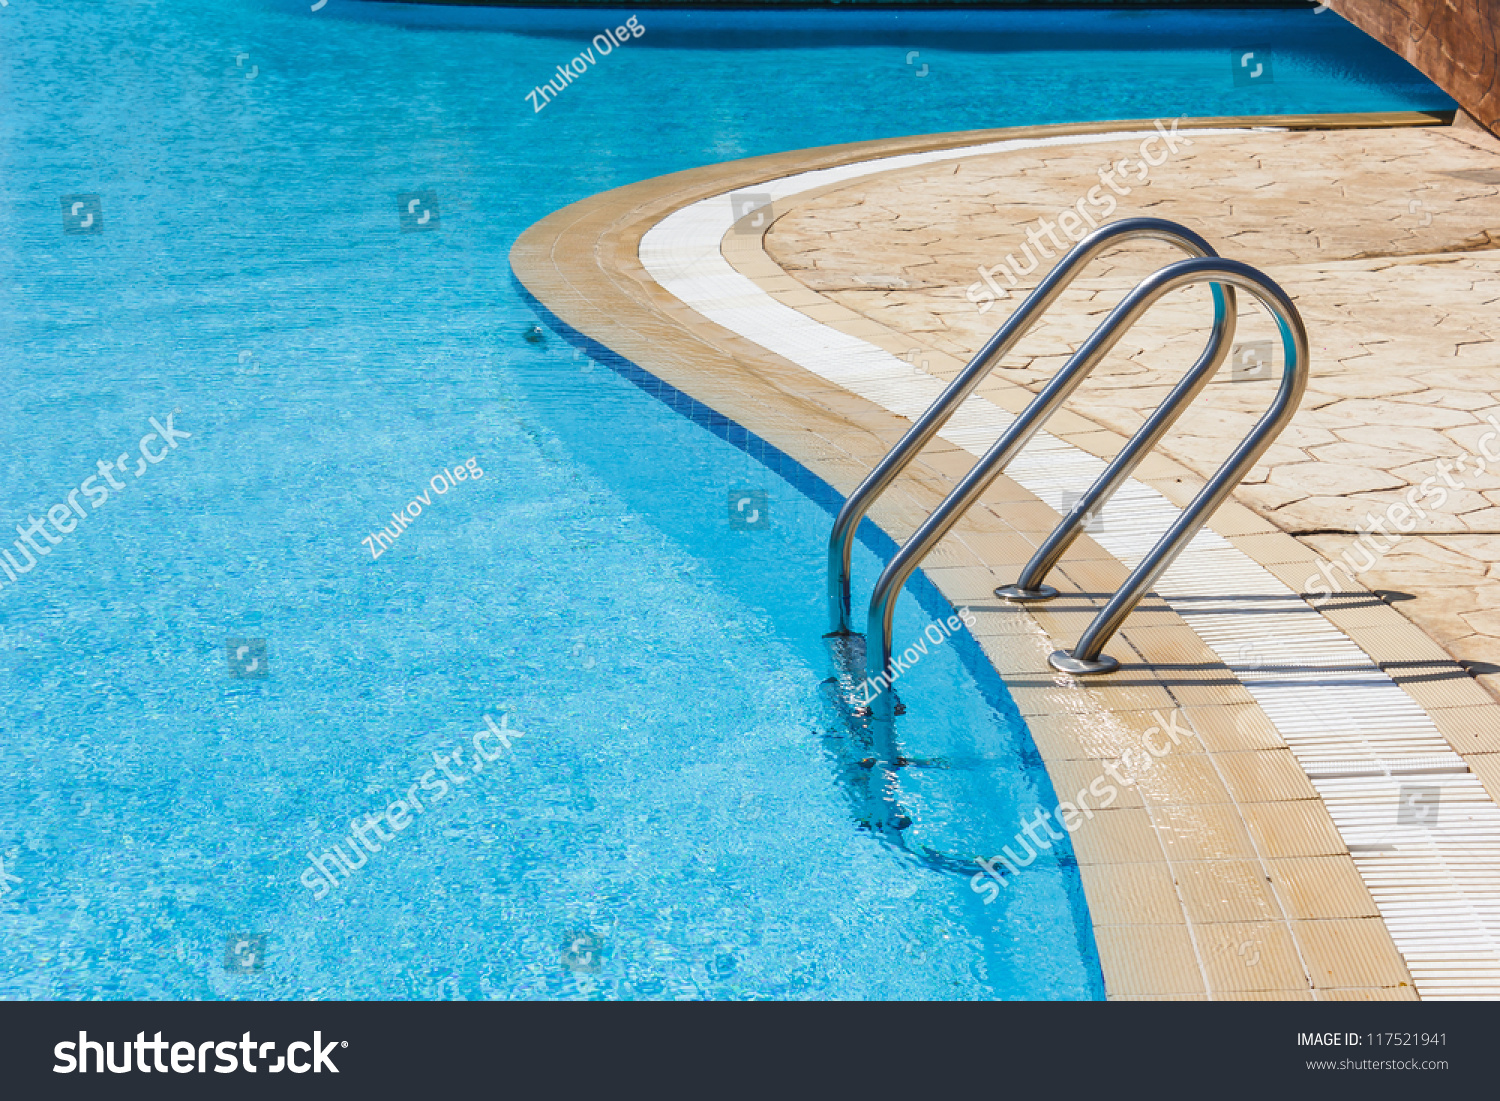 Grab Bars Ladder In The Blue Swimming Pool Stock Photo 117521941 Shutterstock